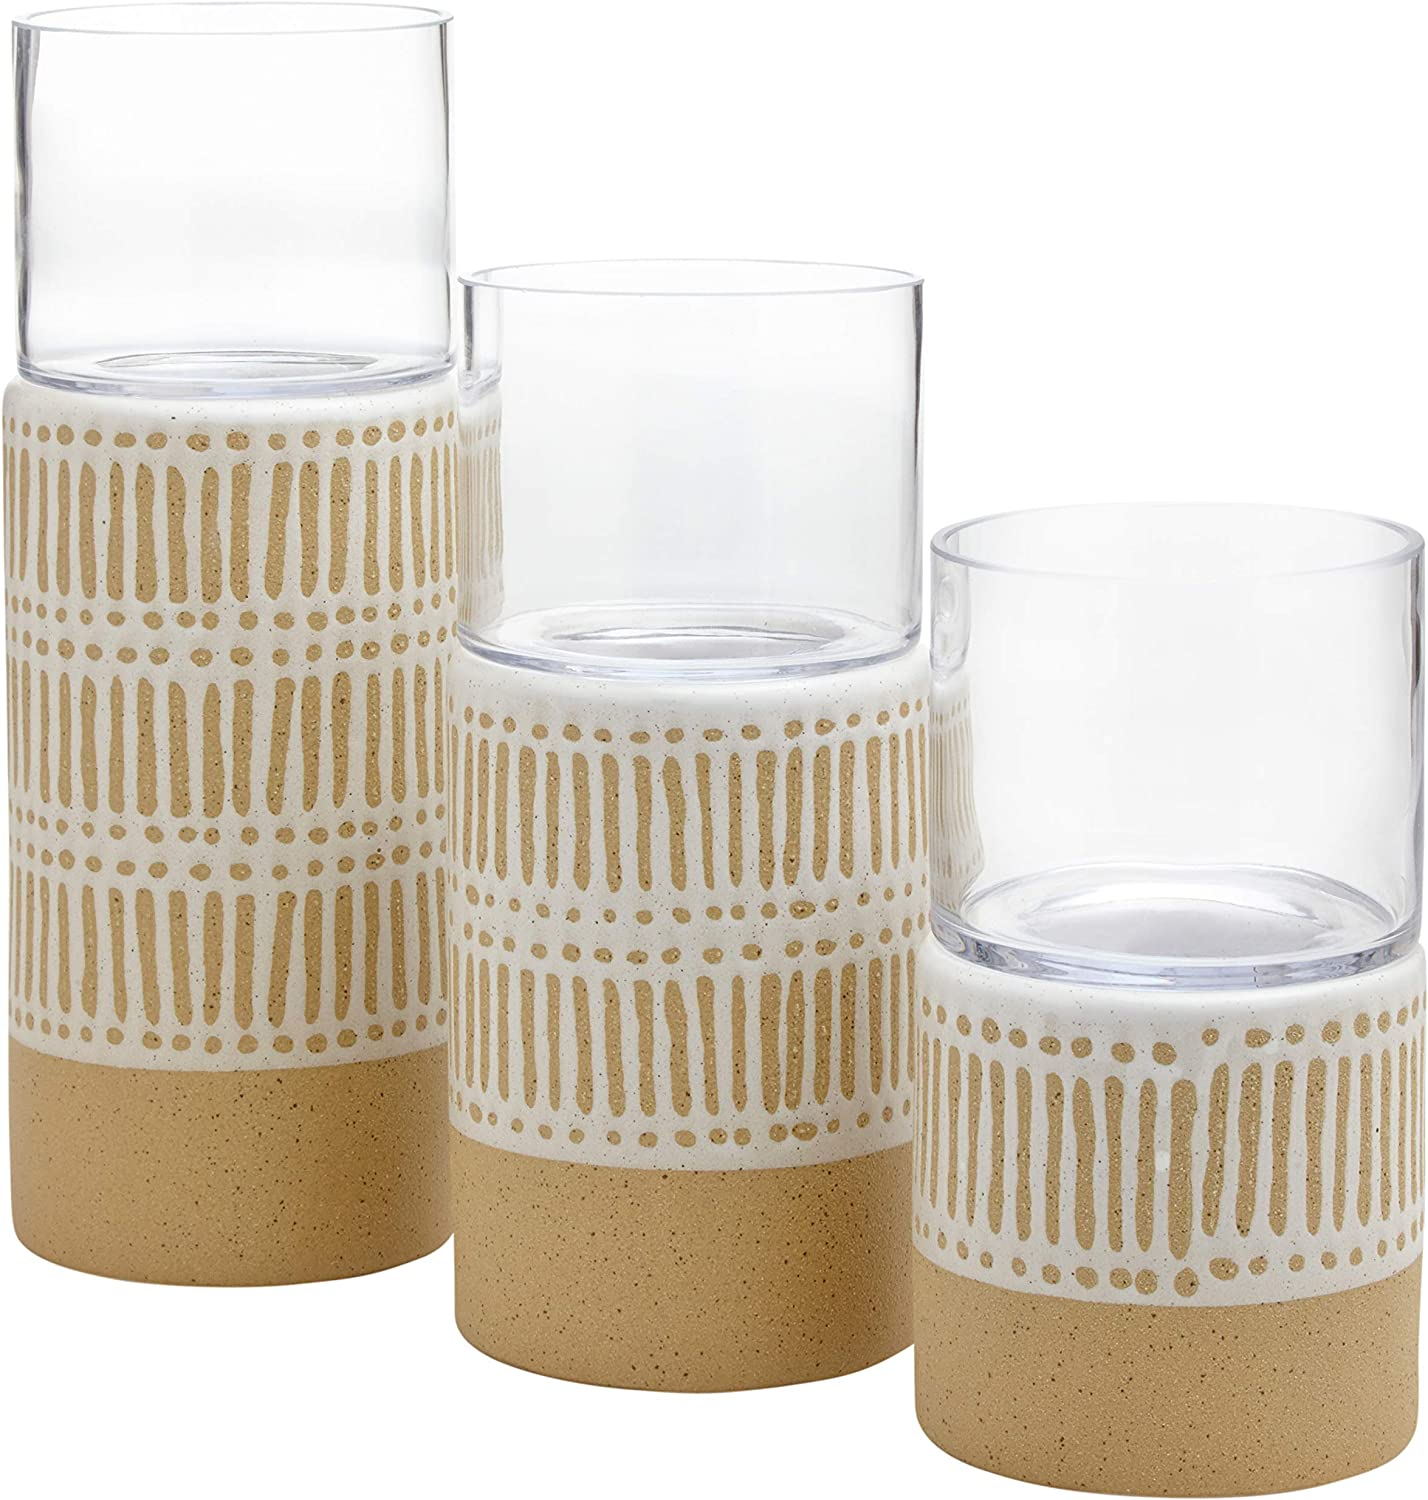 Amazon Brand – Stone & Beam Emerick Rustic Cylinder Hurricane Decor with Glass Vase Holder - Set of 3, Brown and White